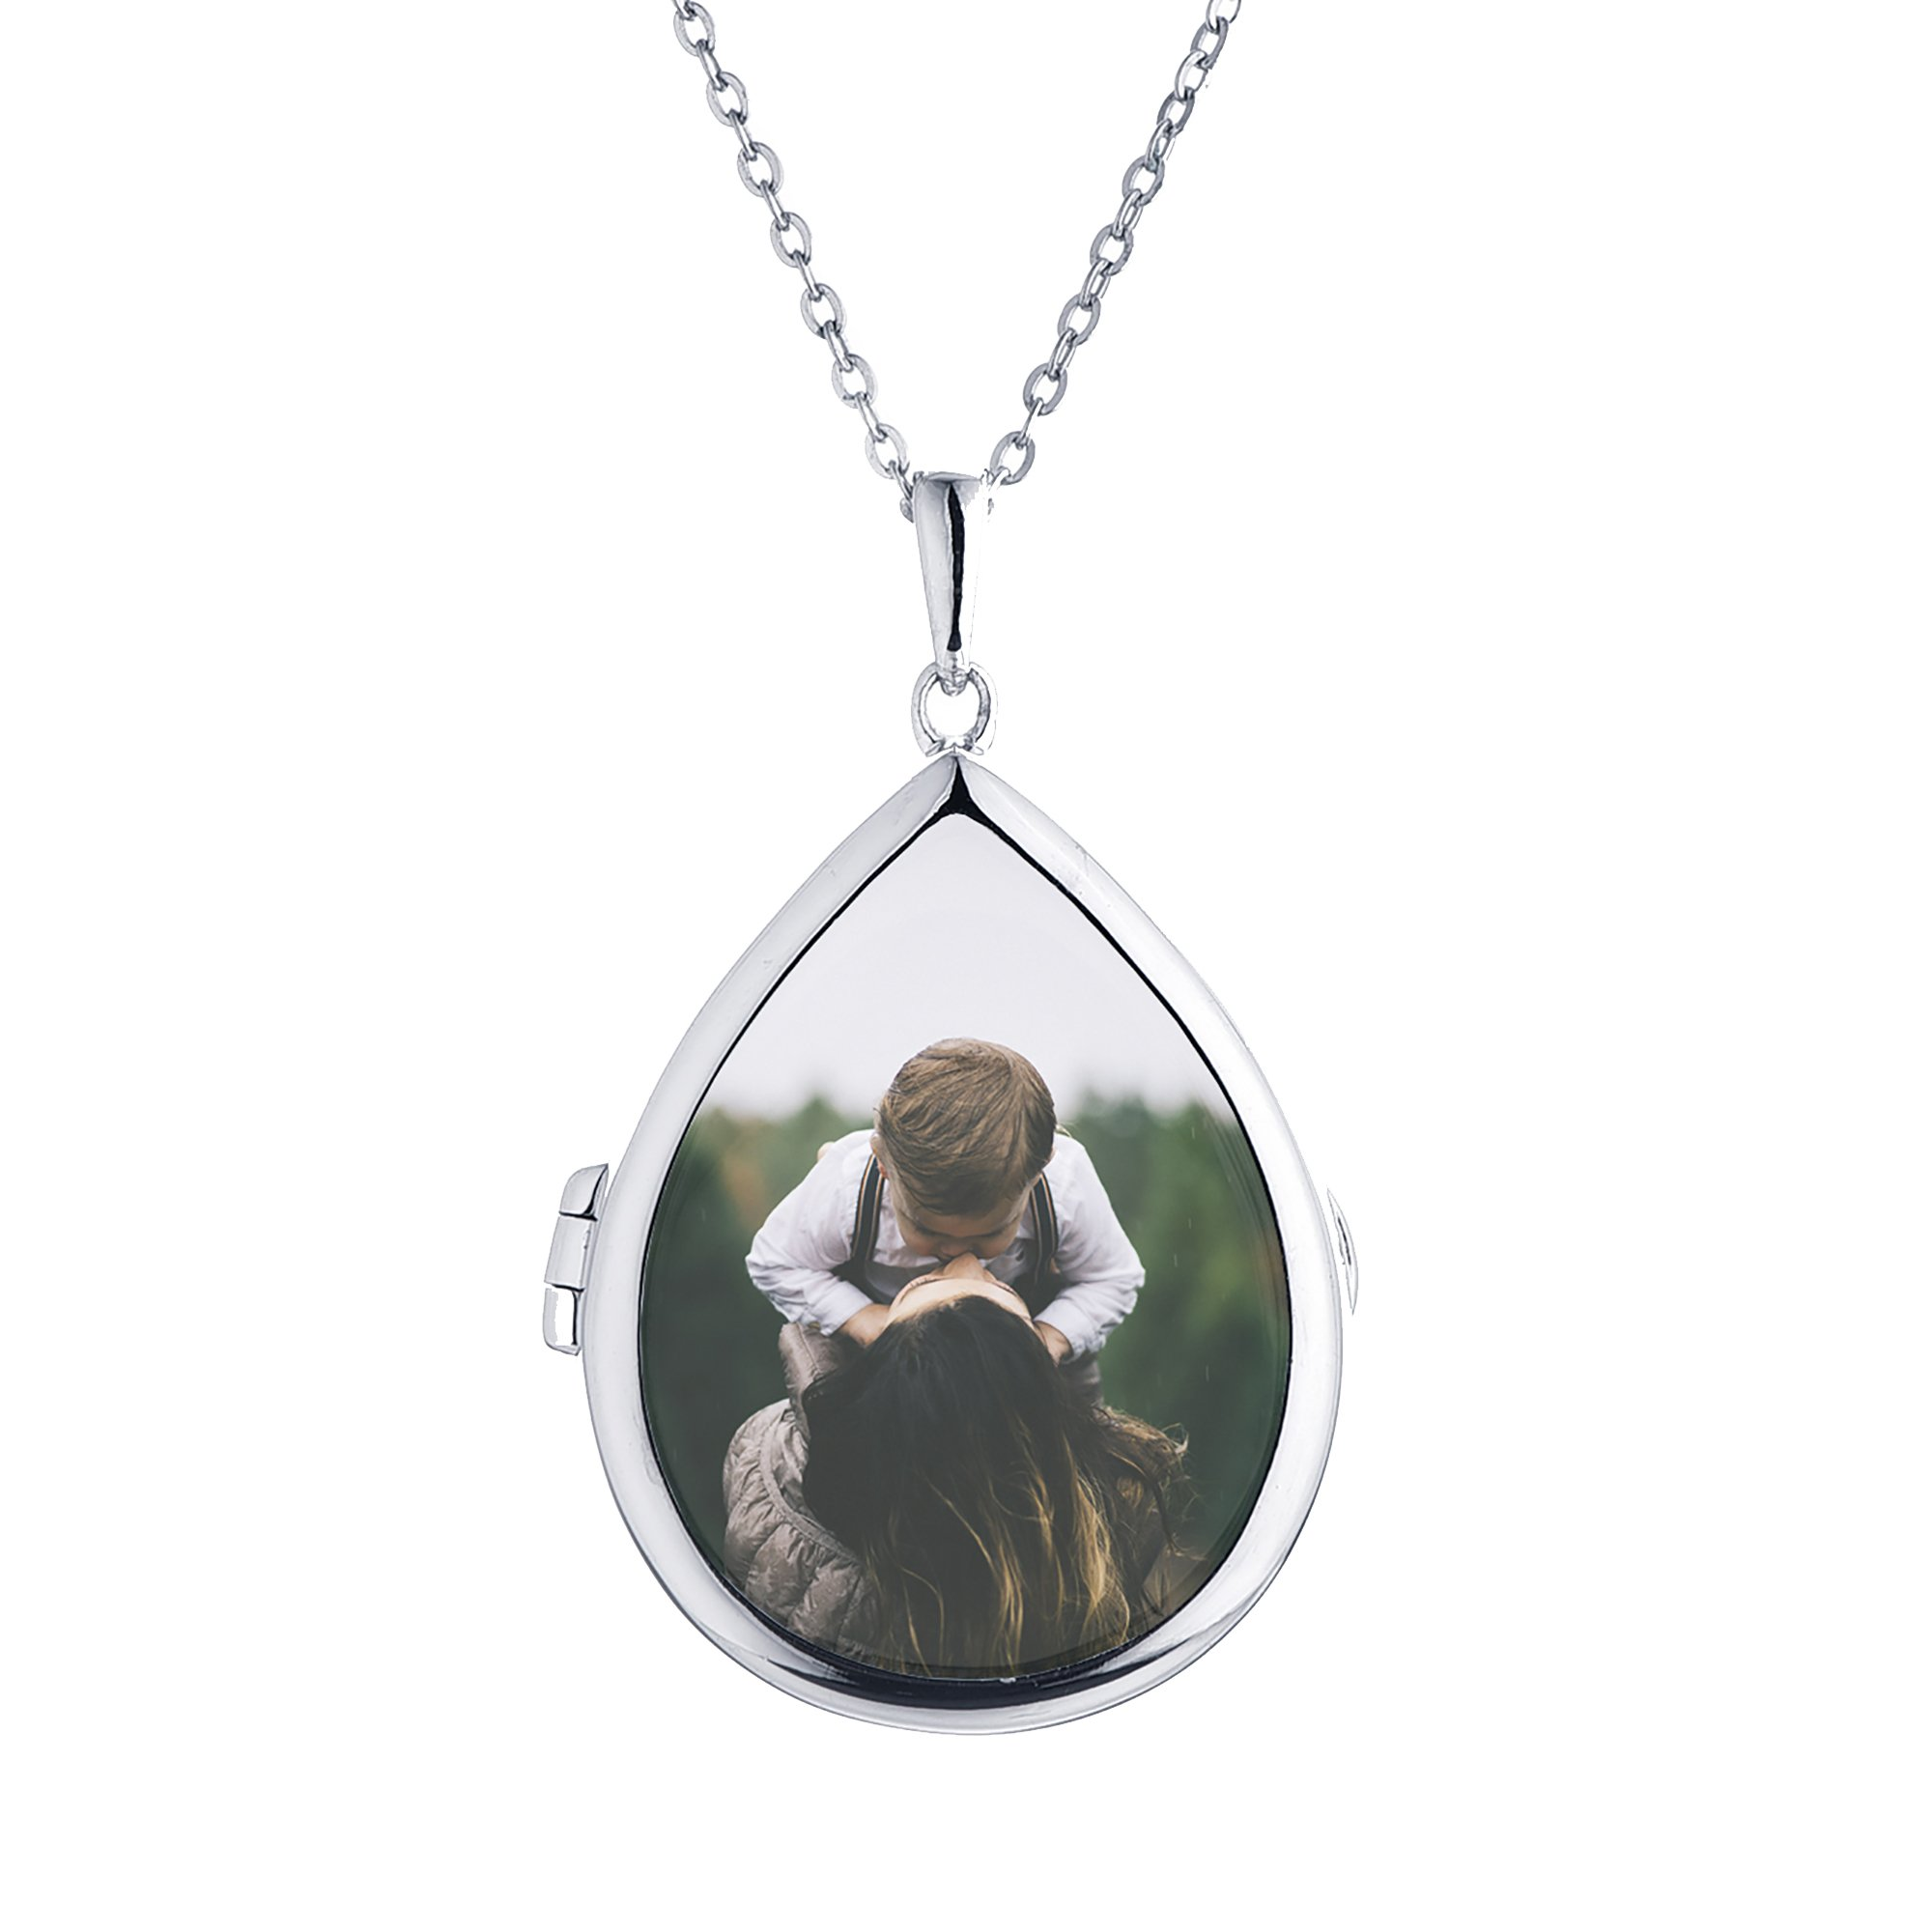 Sterling Silver-Glass-Custom Photo Locket Necklace-18-inch chain-The Sky by With You Lockets by With You Lockets (Image #1)